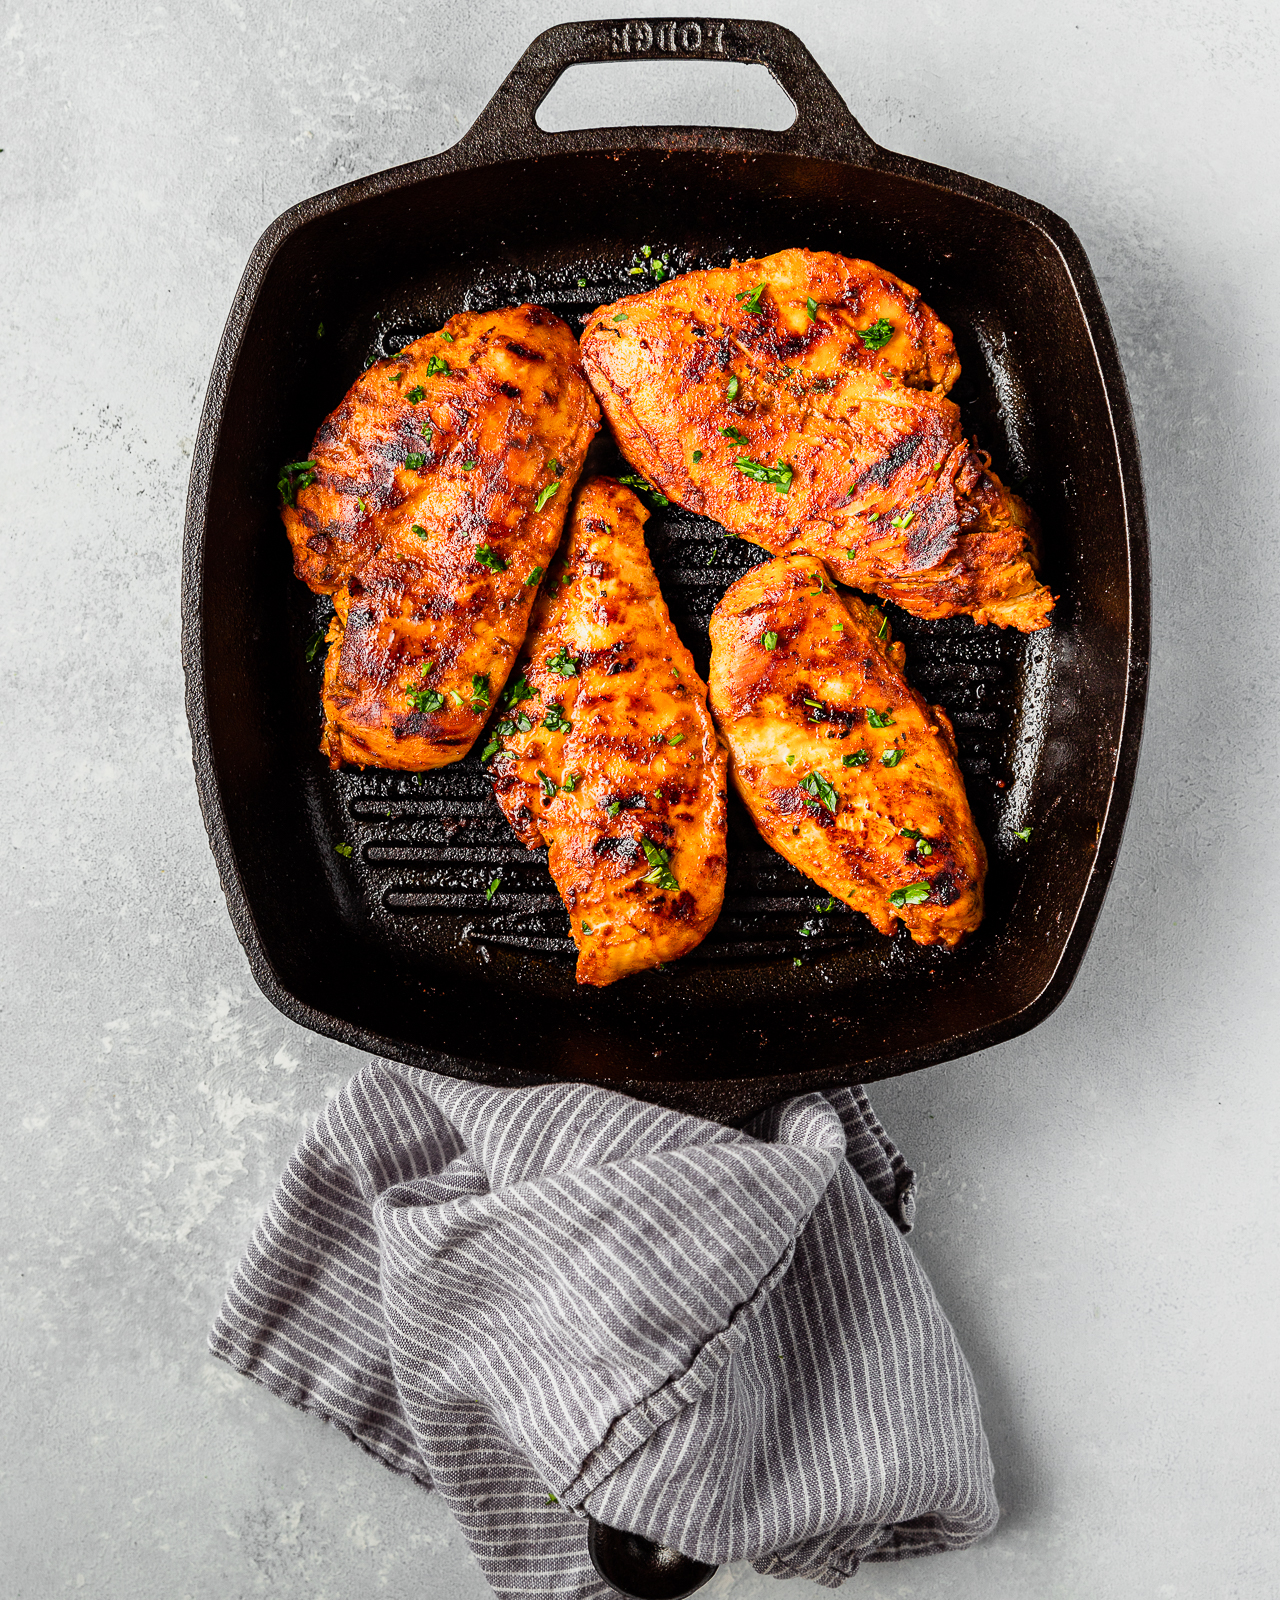 bbq chicken on a grill pan